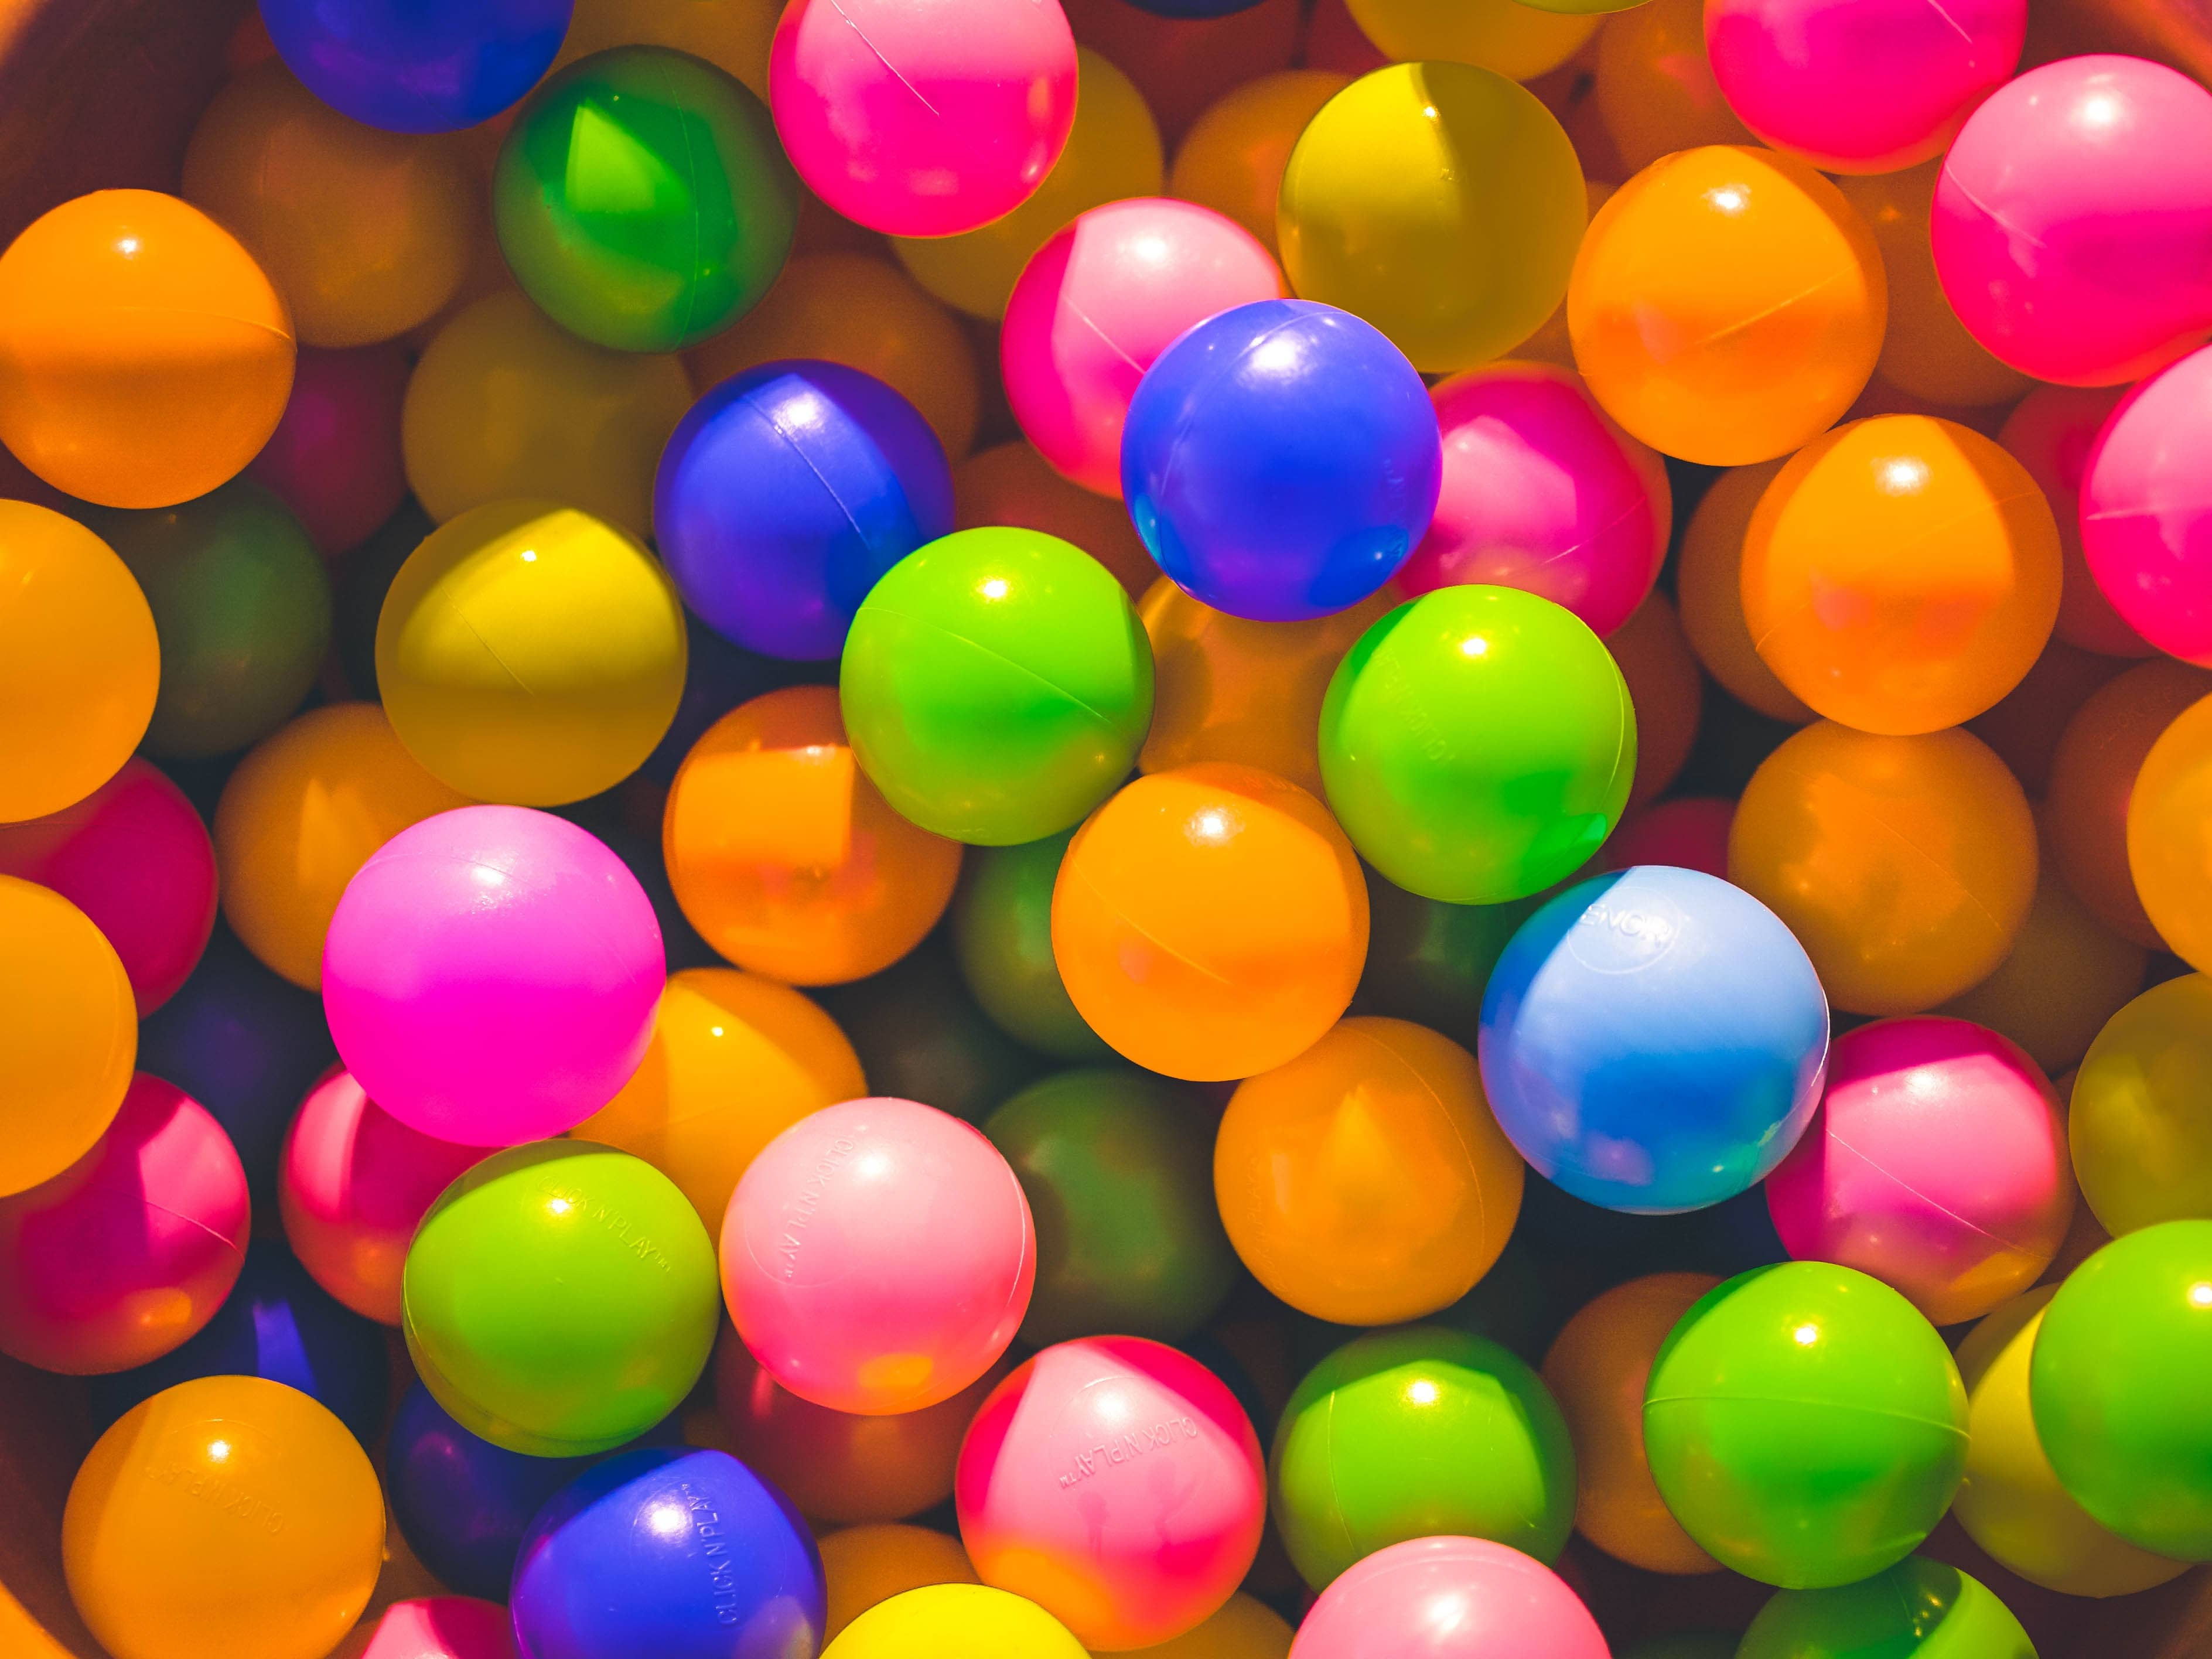 Lots of colored balloons